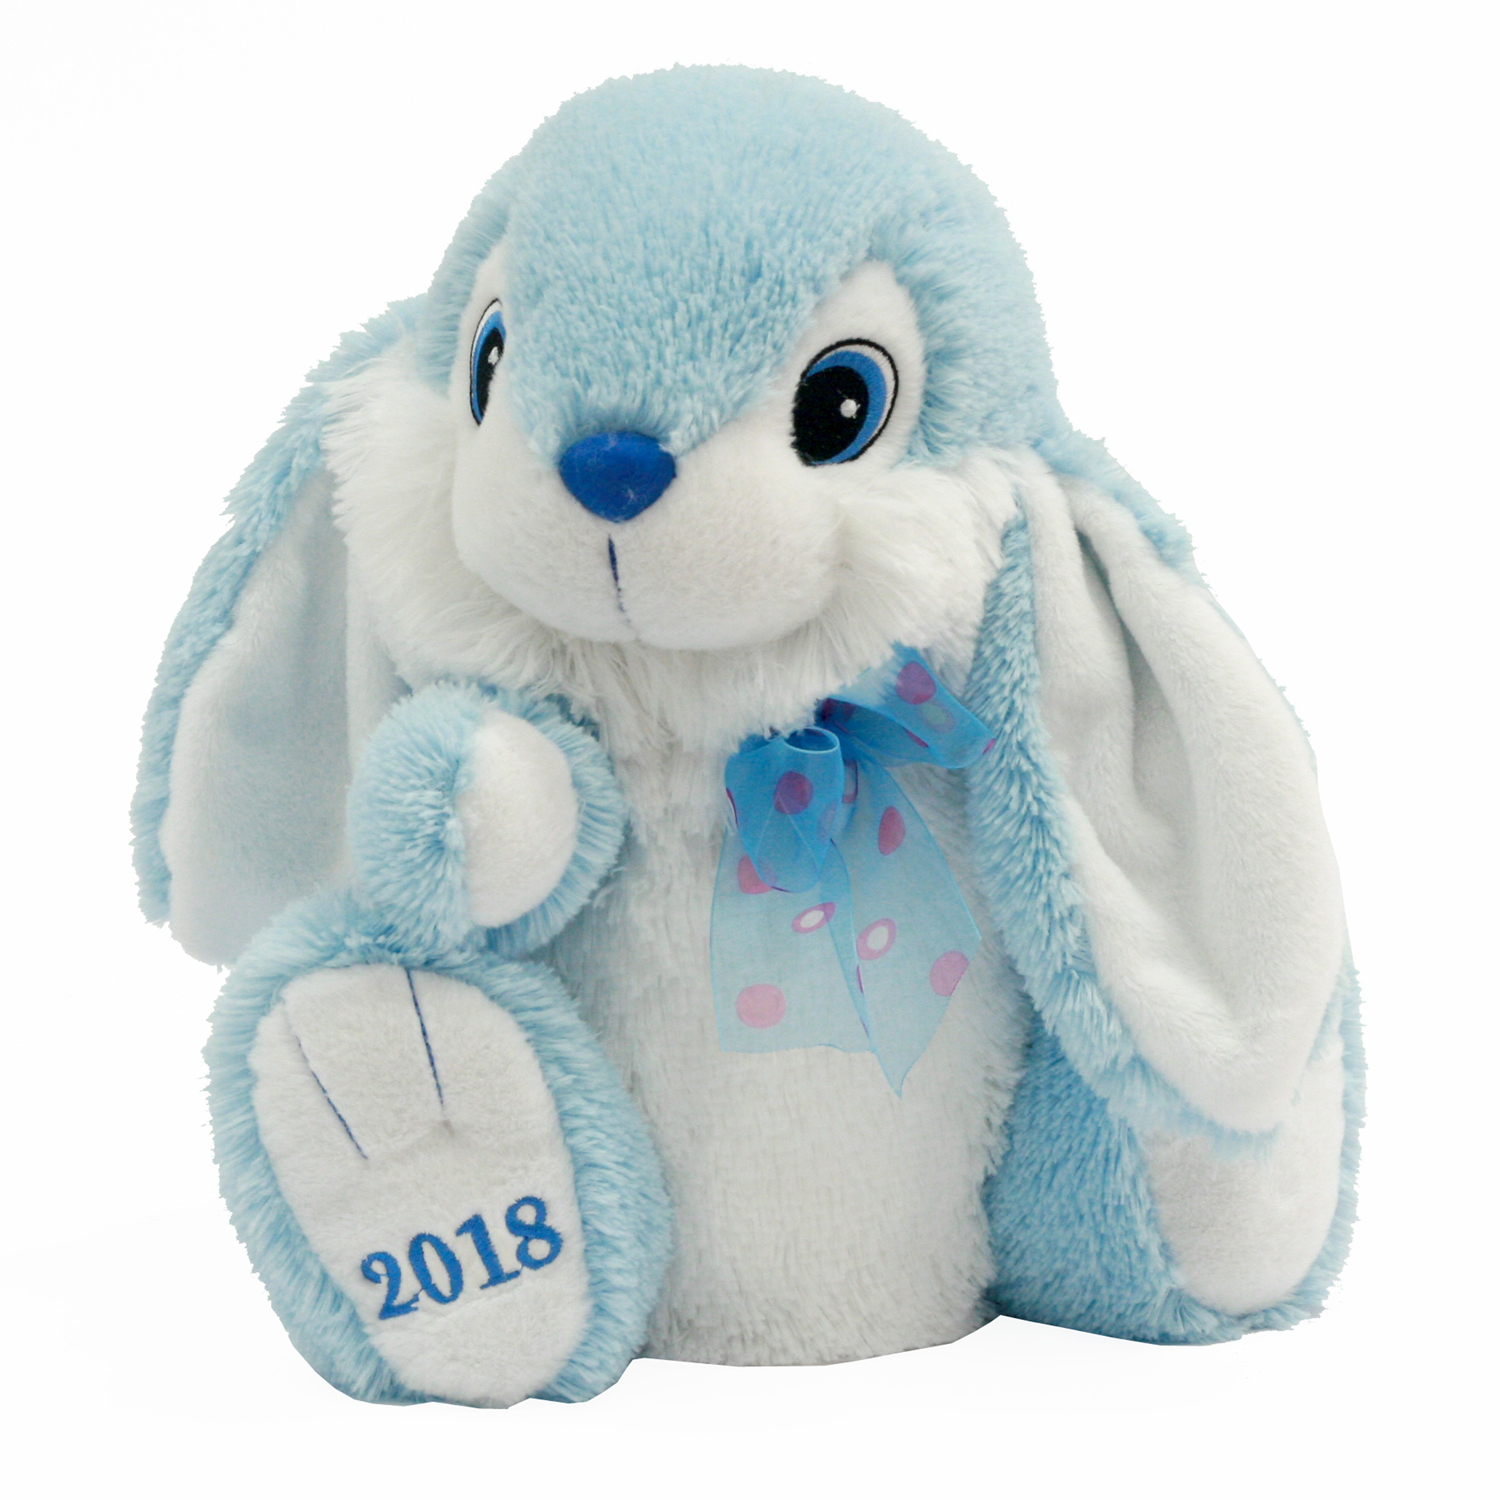 Easter Collectible Hoppy Hopster Bunny Plush Toy For 2018 Gift